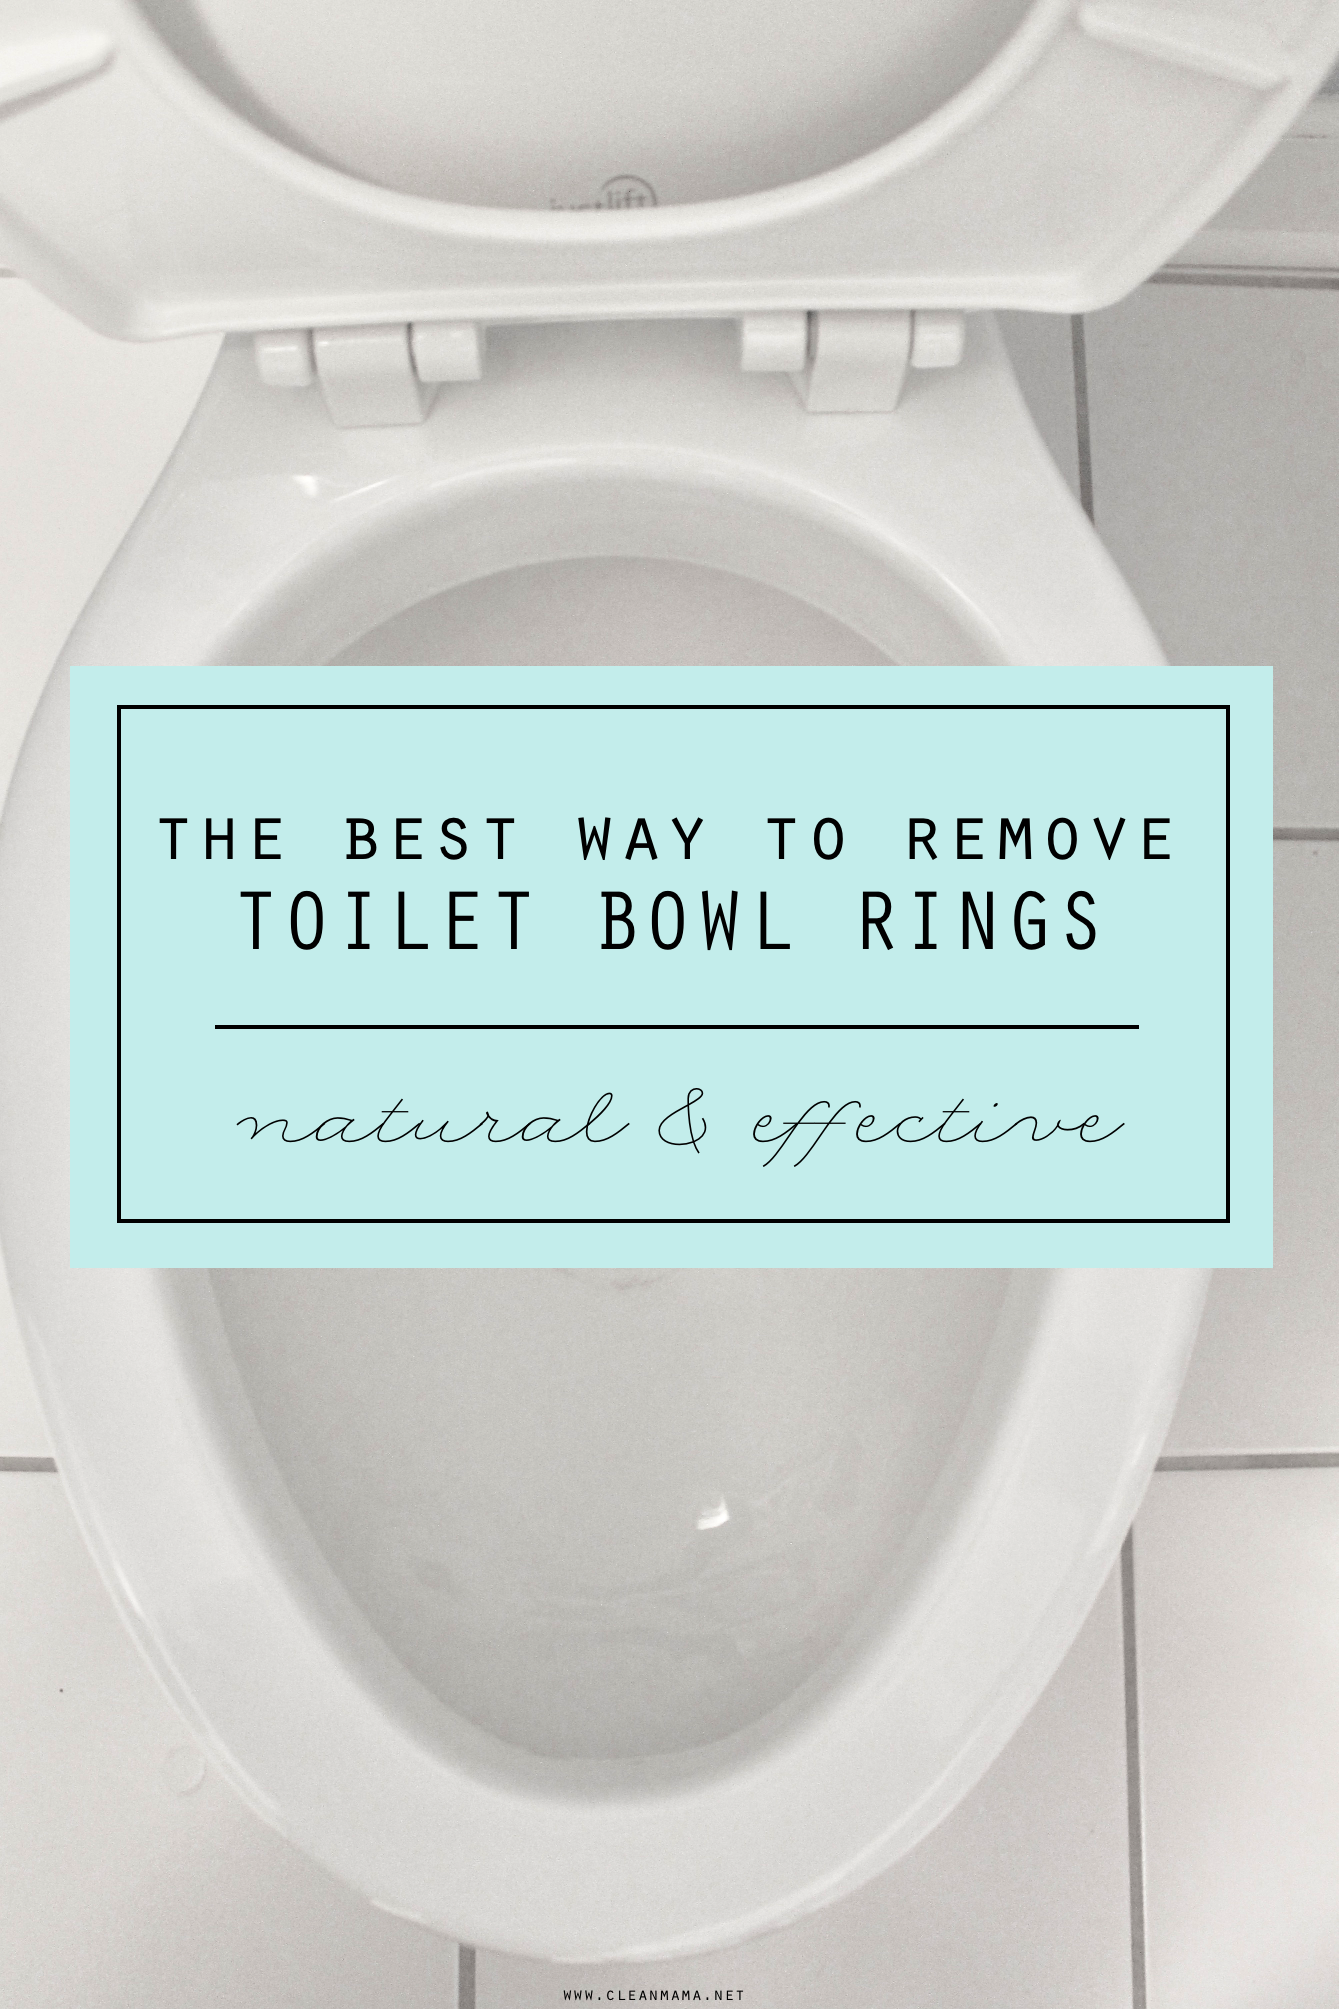 Love using it to clean all the nooks and crannies of my bathroom - Get Rid Of That Annoying Toilet Bowl Ring With This Unexpected And Ridiculously Simple Tip